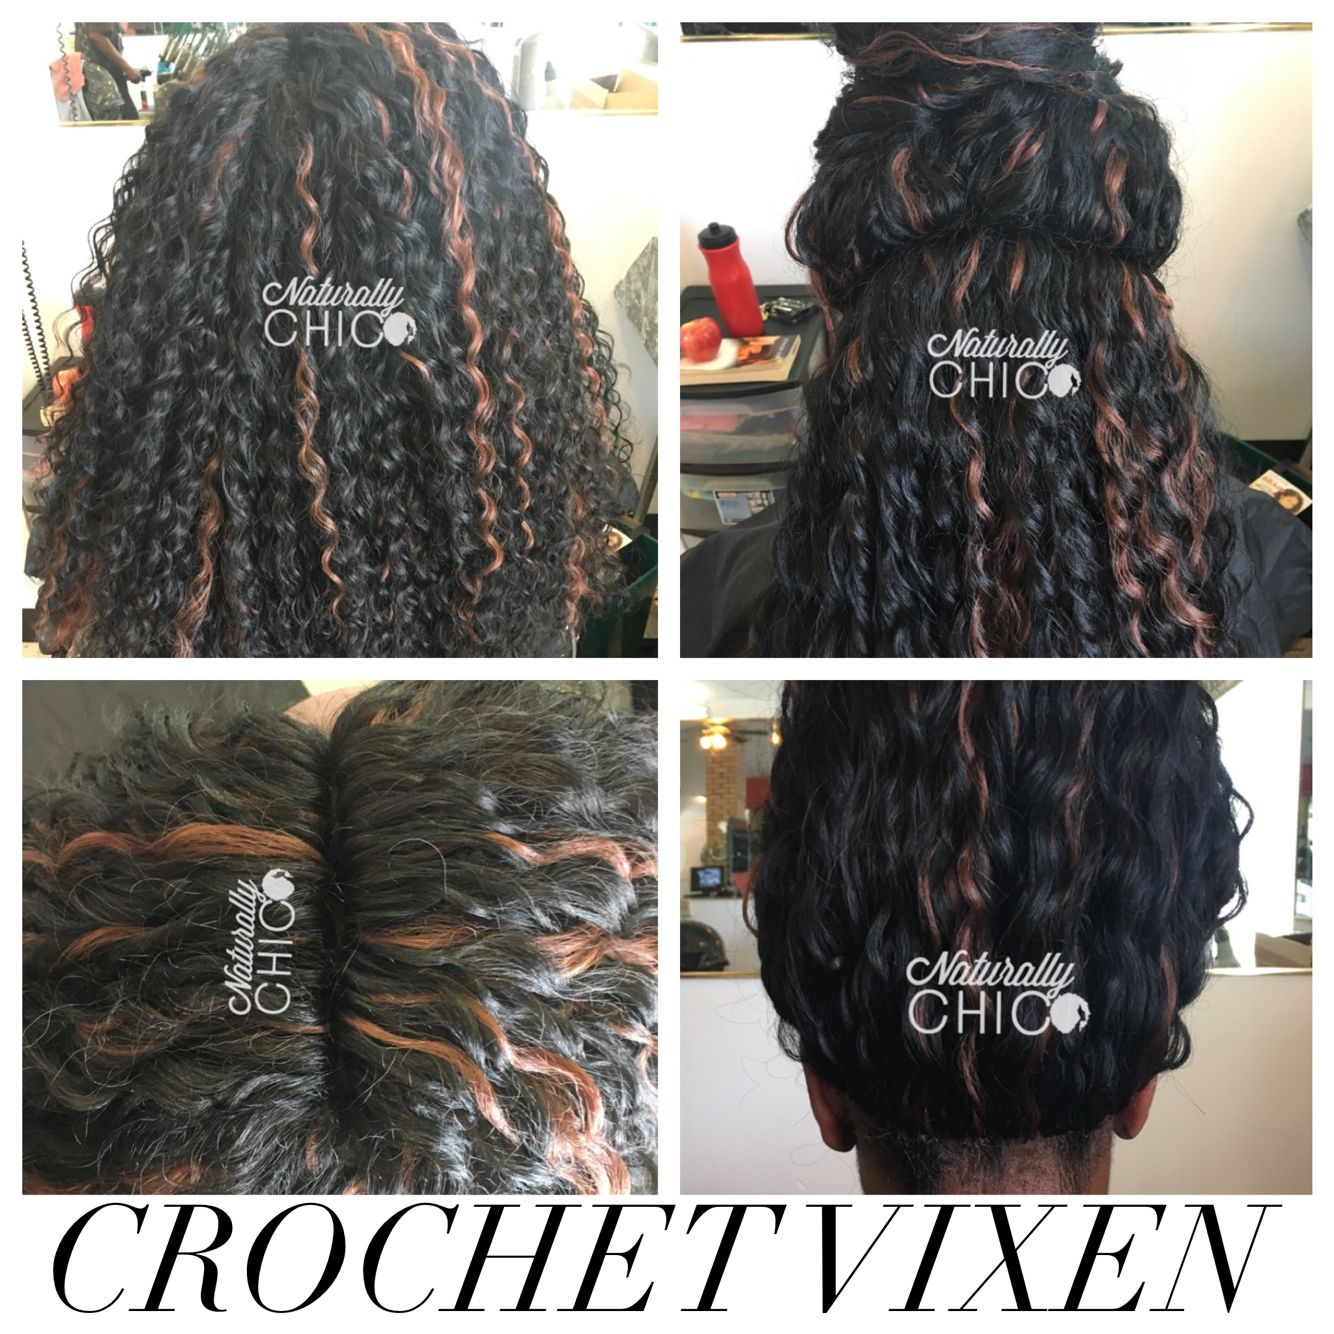 Pin On Protective Styles For Natural Hair By Naturally Chic